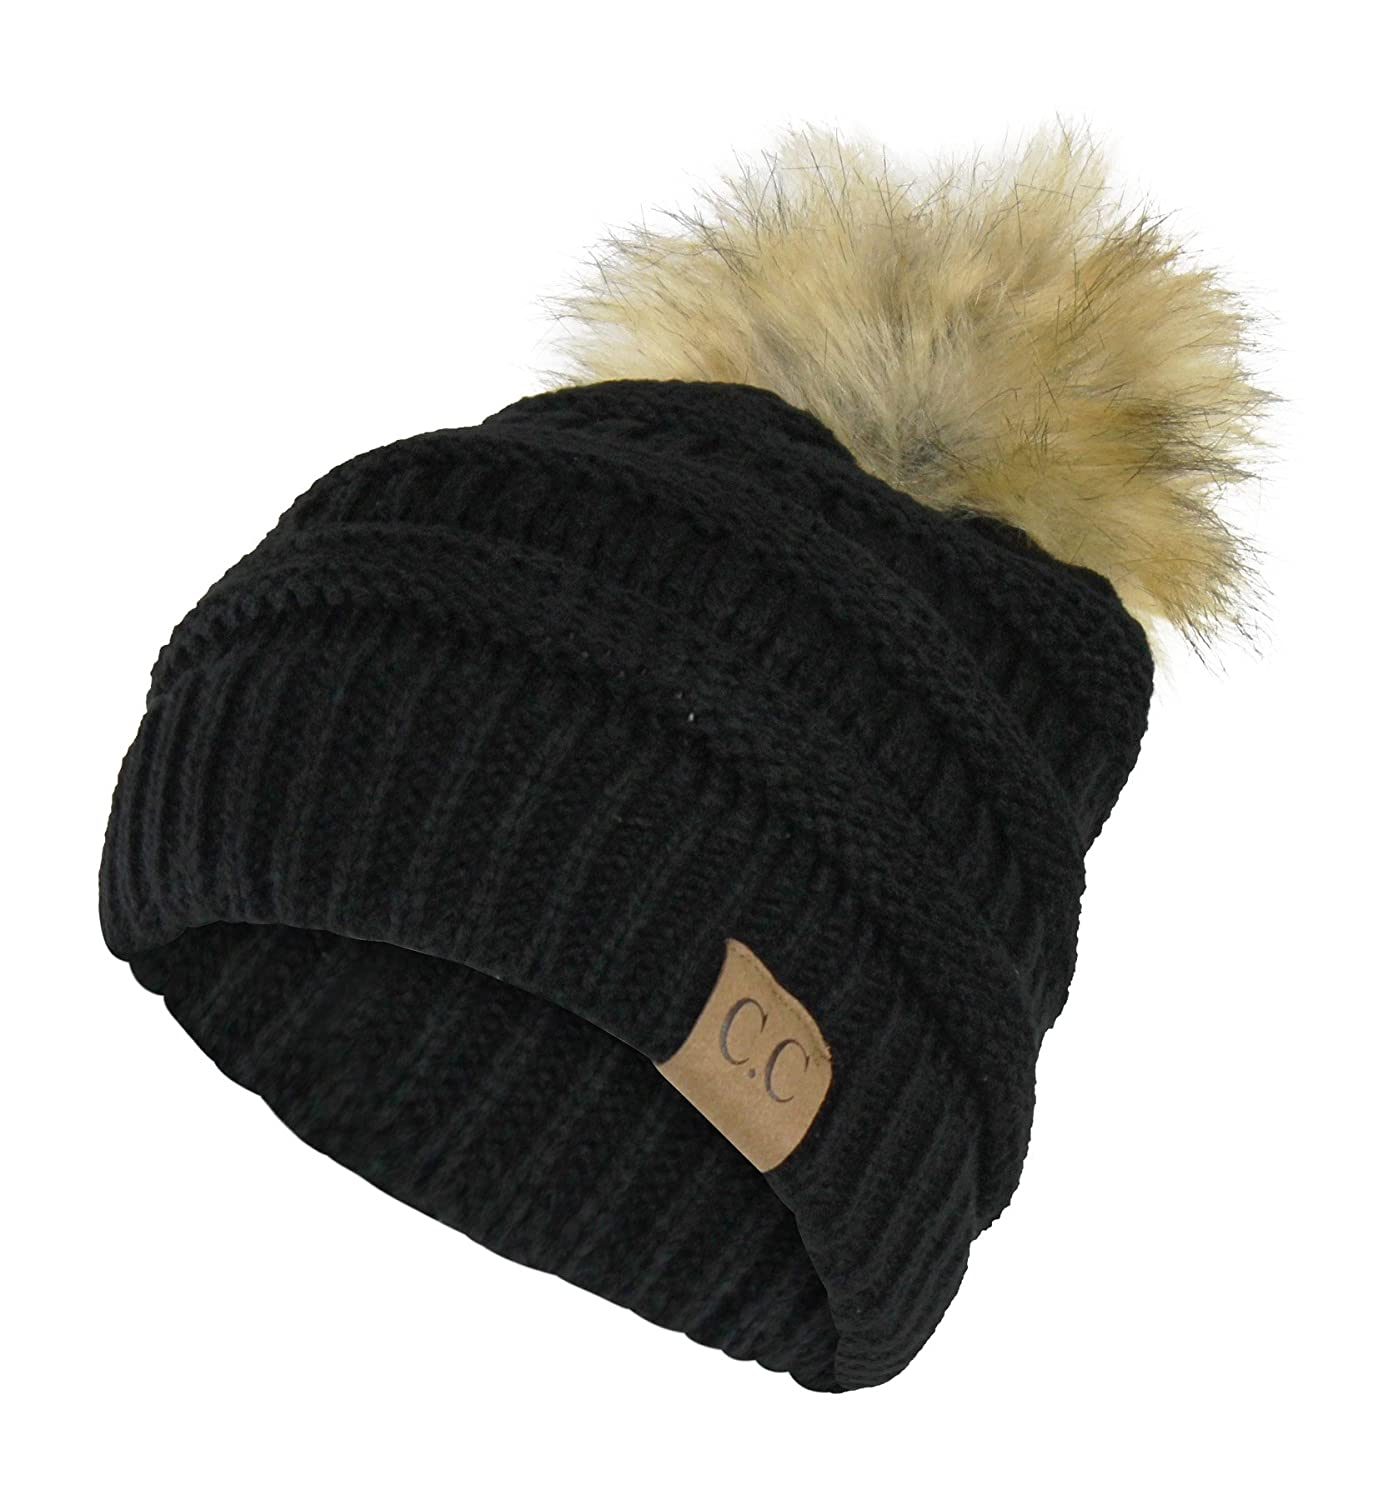 a5e065fb801 Black Chunky Cable Knit Beanie Hat w  Faux Fur Pom Pom - Winter Skull Cap  at Amazon Women s Clothing store